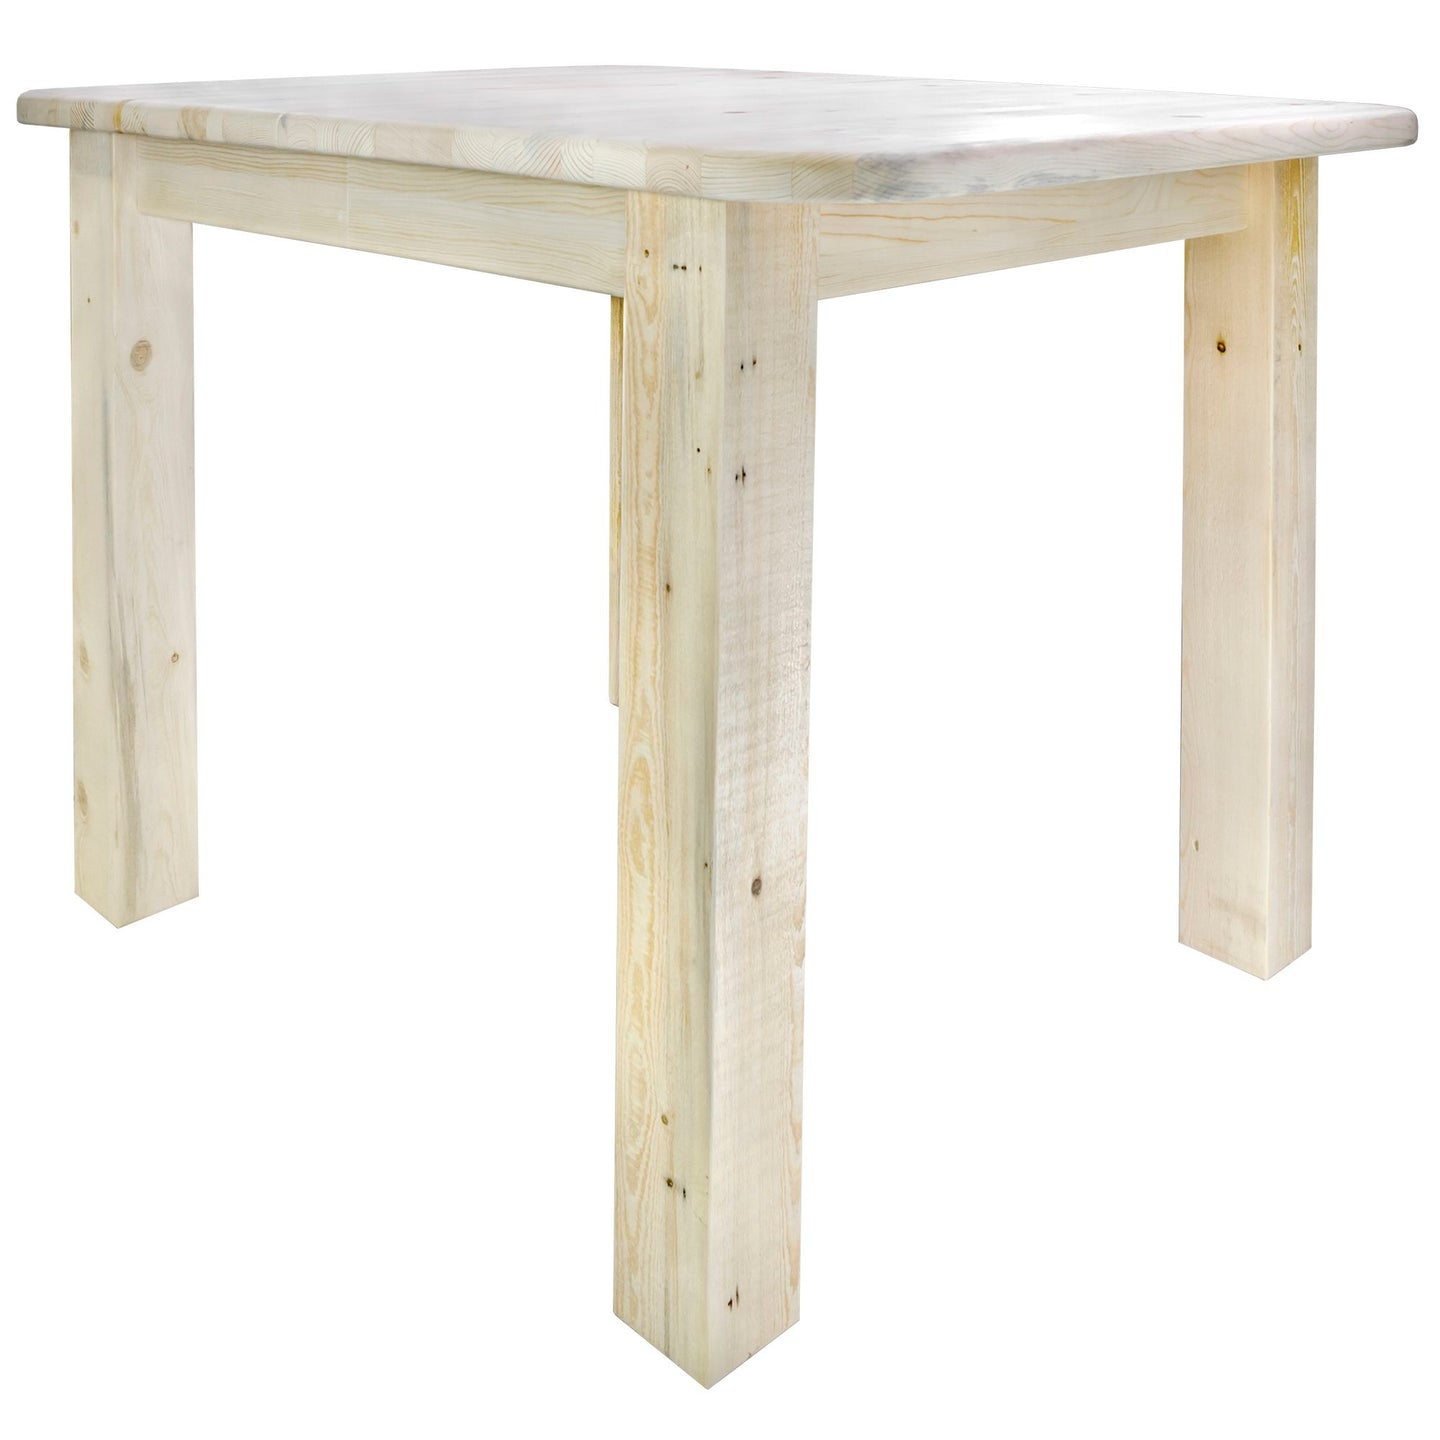 Homestead Counter Height Square 4 Post Rustic Dining Table